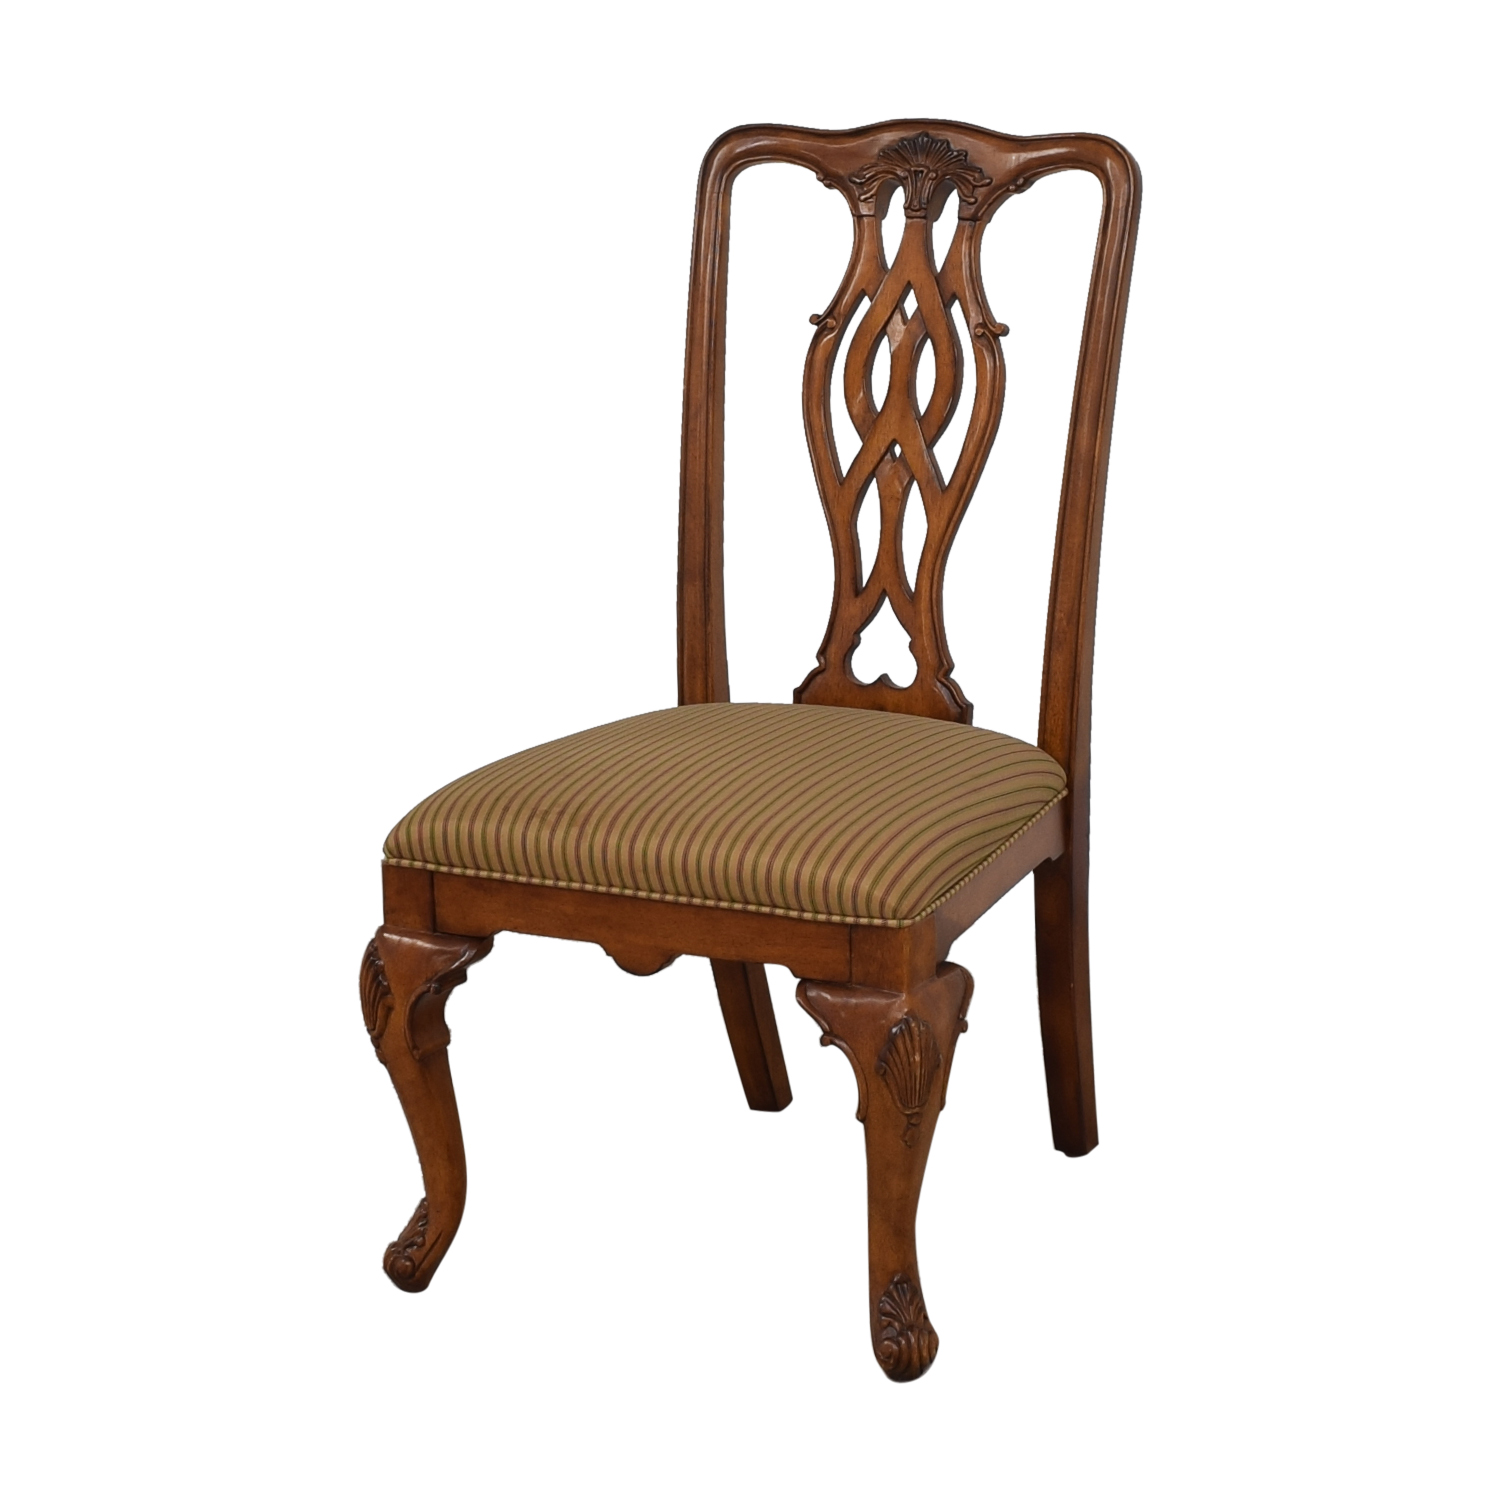 Drexel Heritage Drexel Heritage Dining Chairs second hand